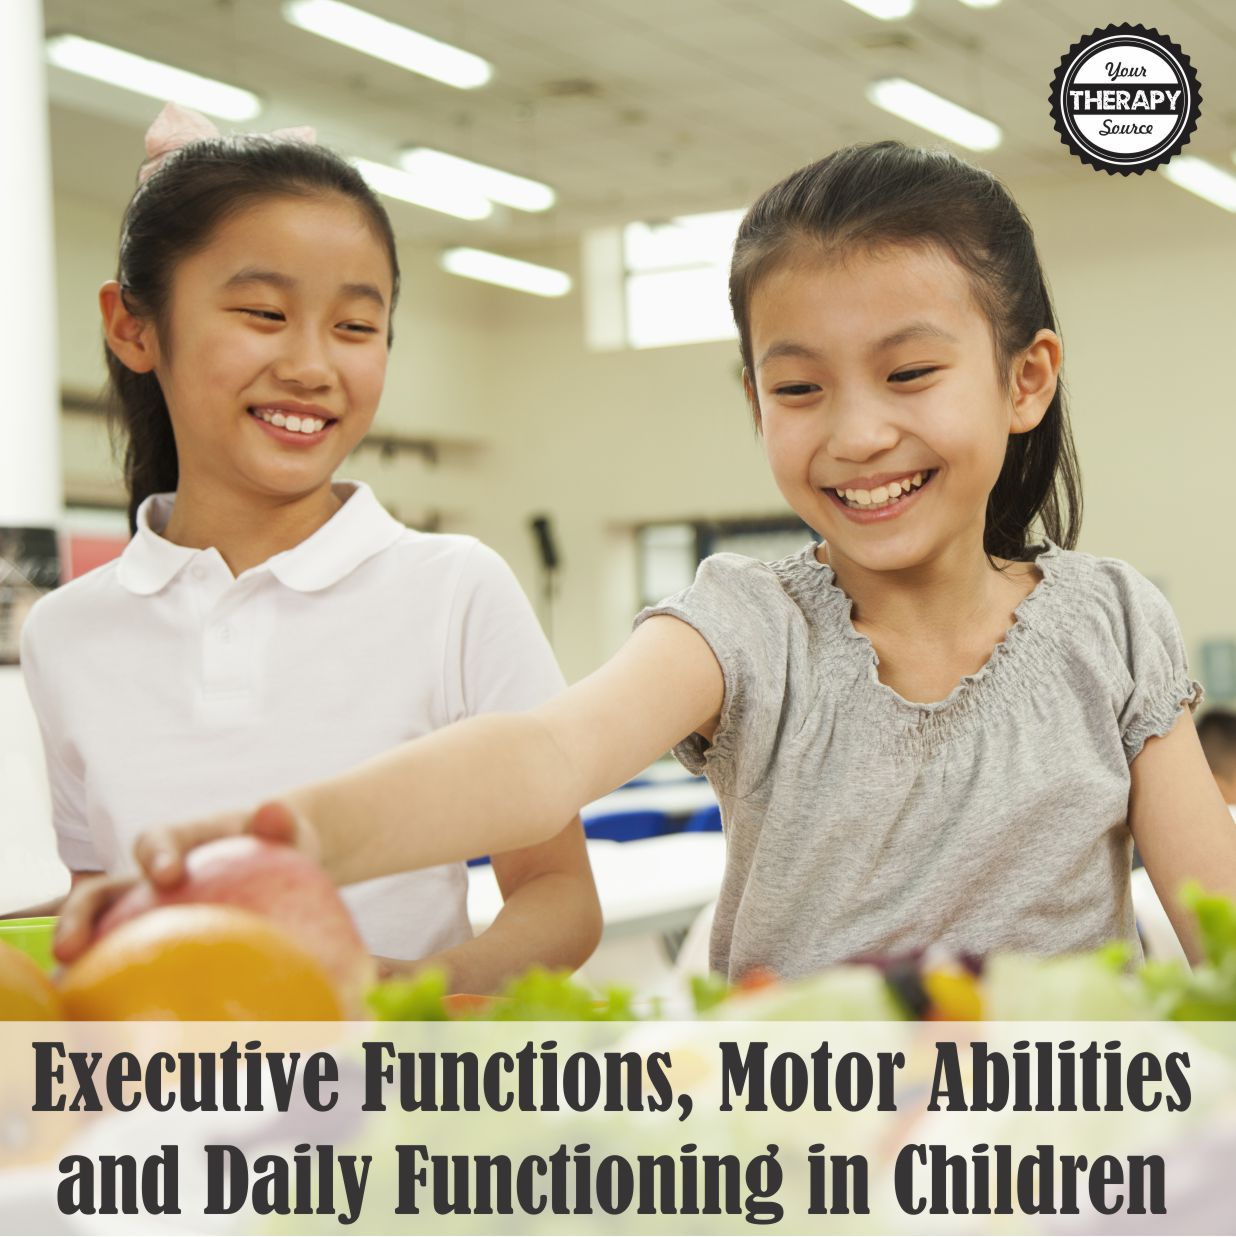 Executive Functions, Motor Abilities and Daily Functioning in Children